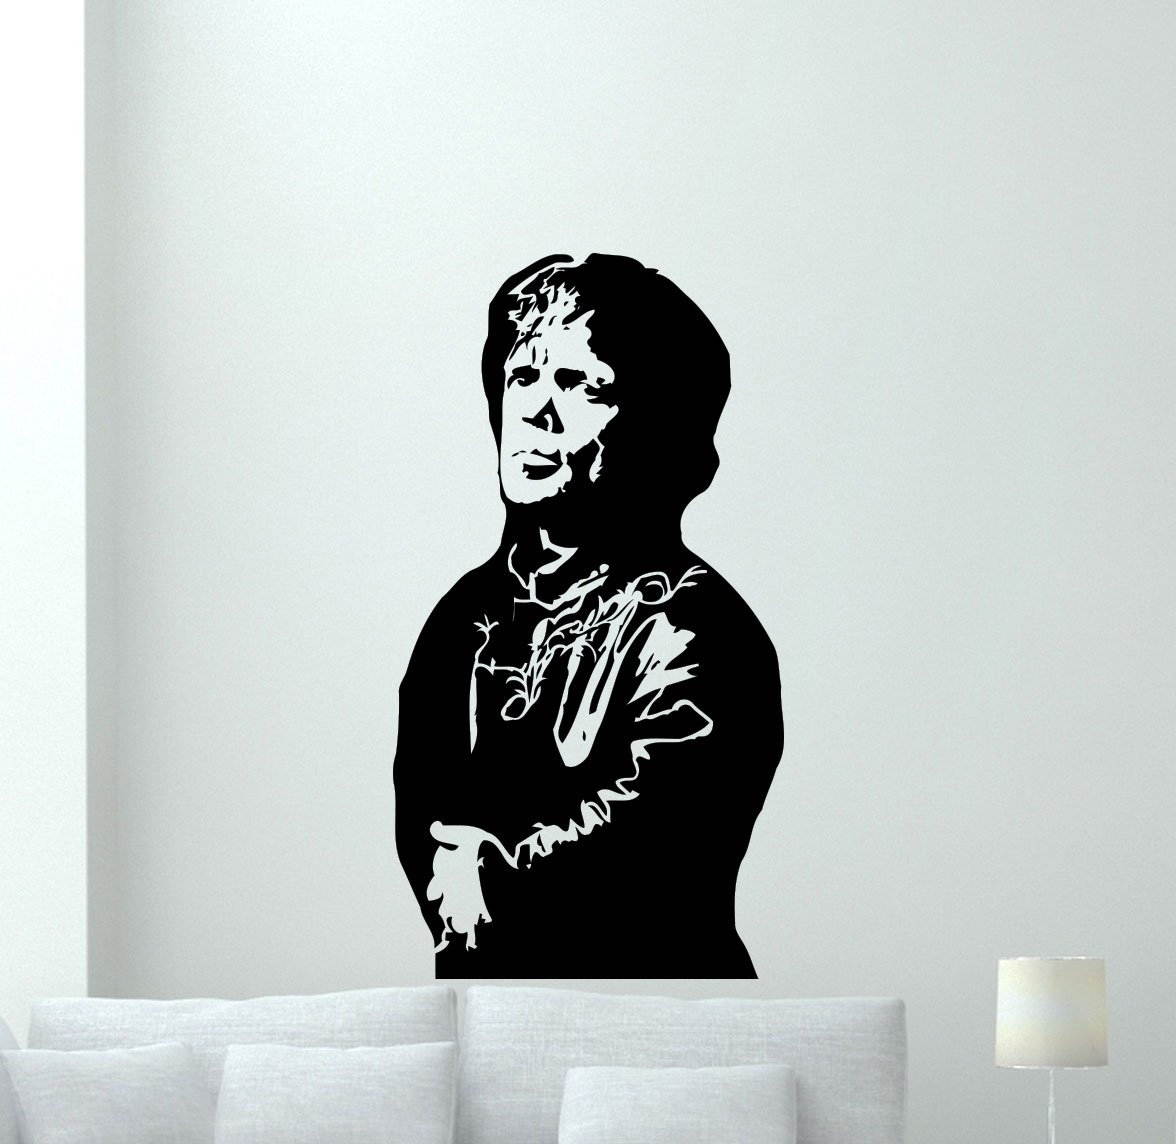 Tyrion Lannister Wall Decal Game Of Thrones Vinyl Sticker Fantasy Movie Wall Art Design Housewares Kids Room Bedroom Decor Removable Wall Mural 36zzz